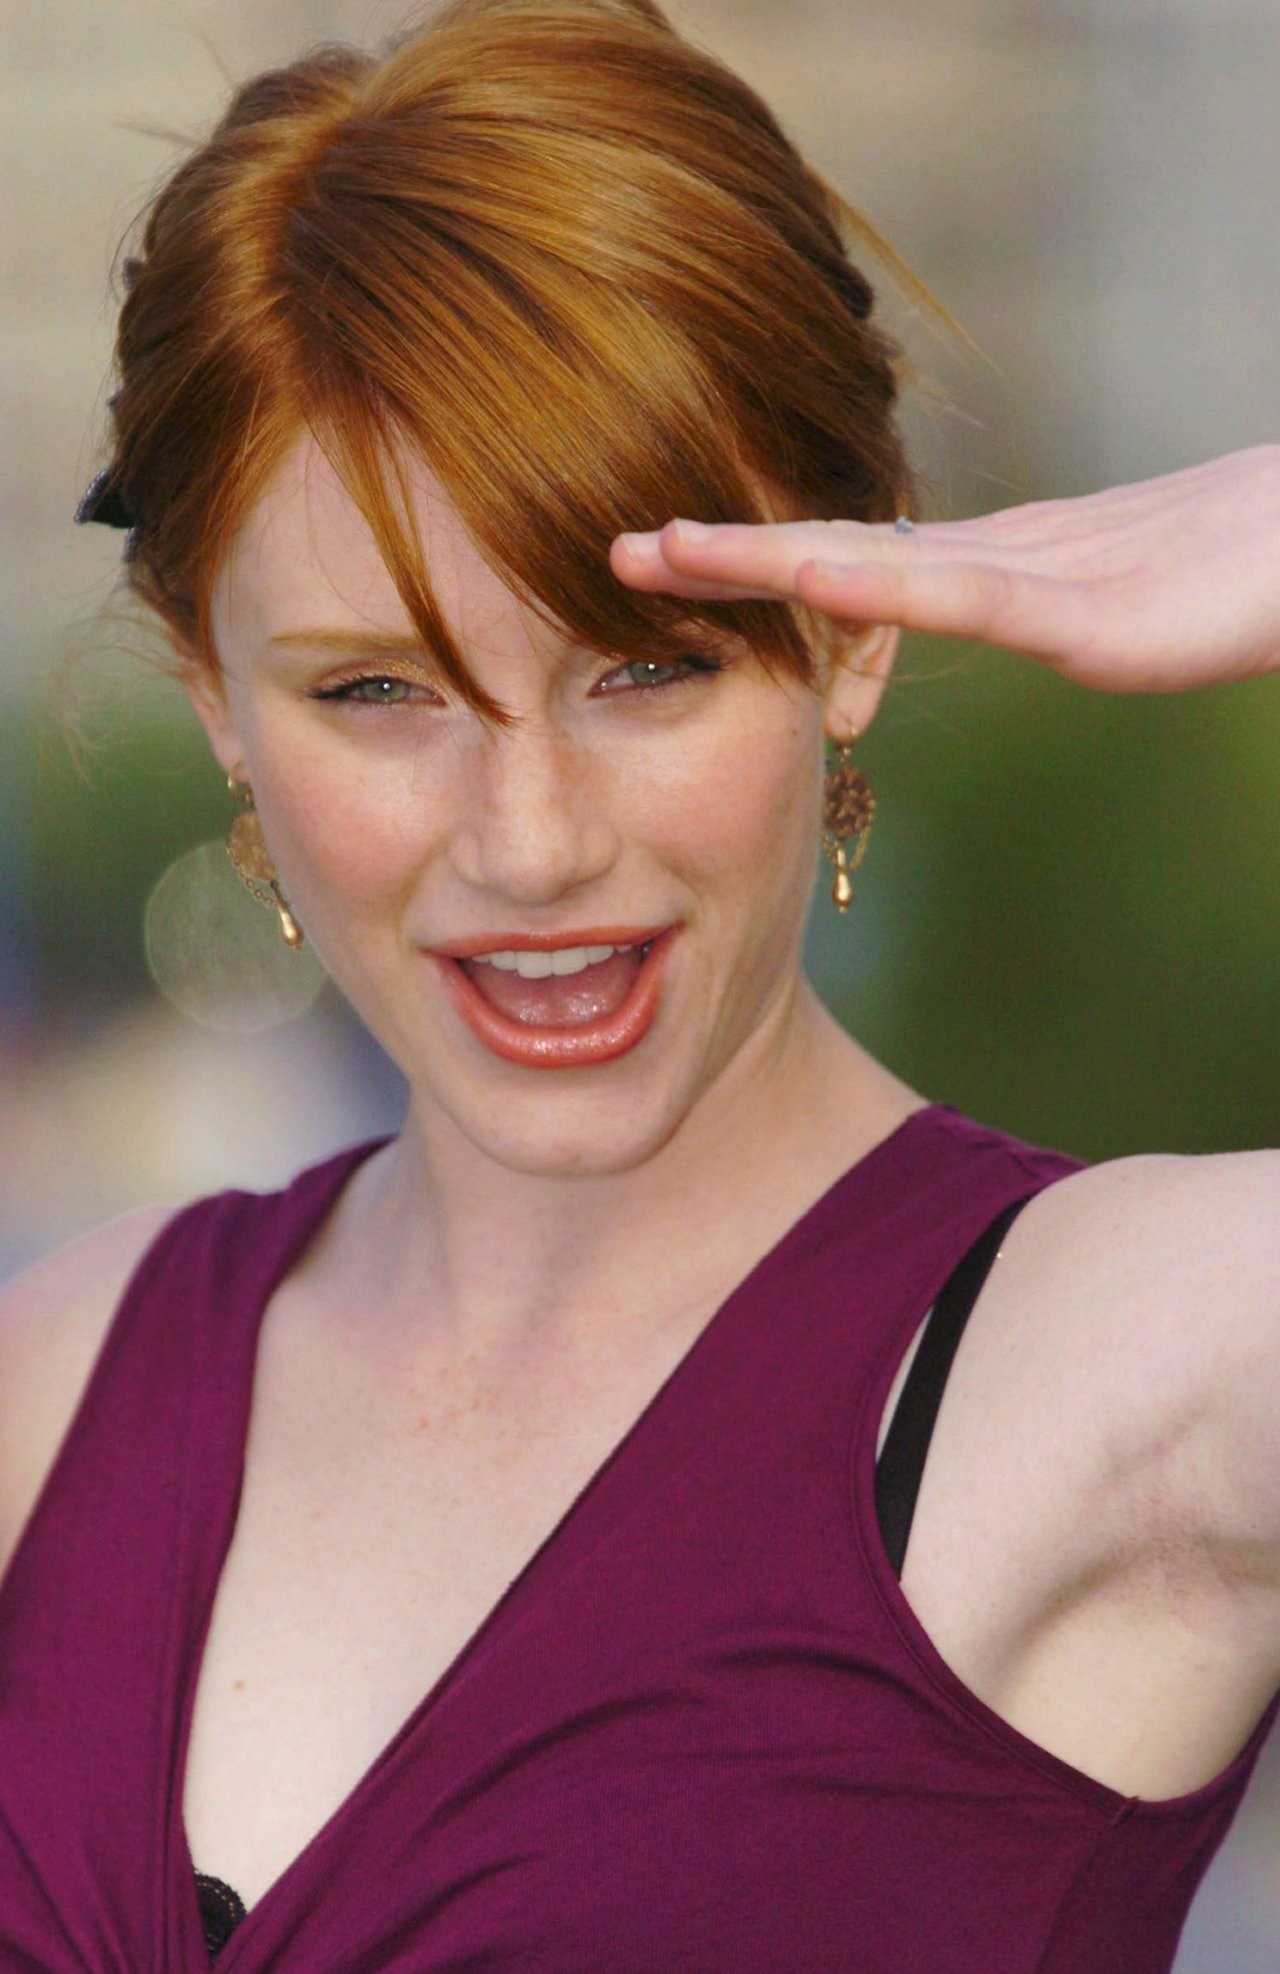 Bryce Dallas Howard images